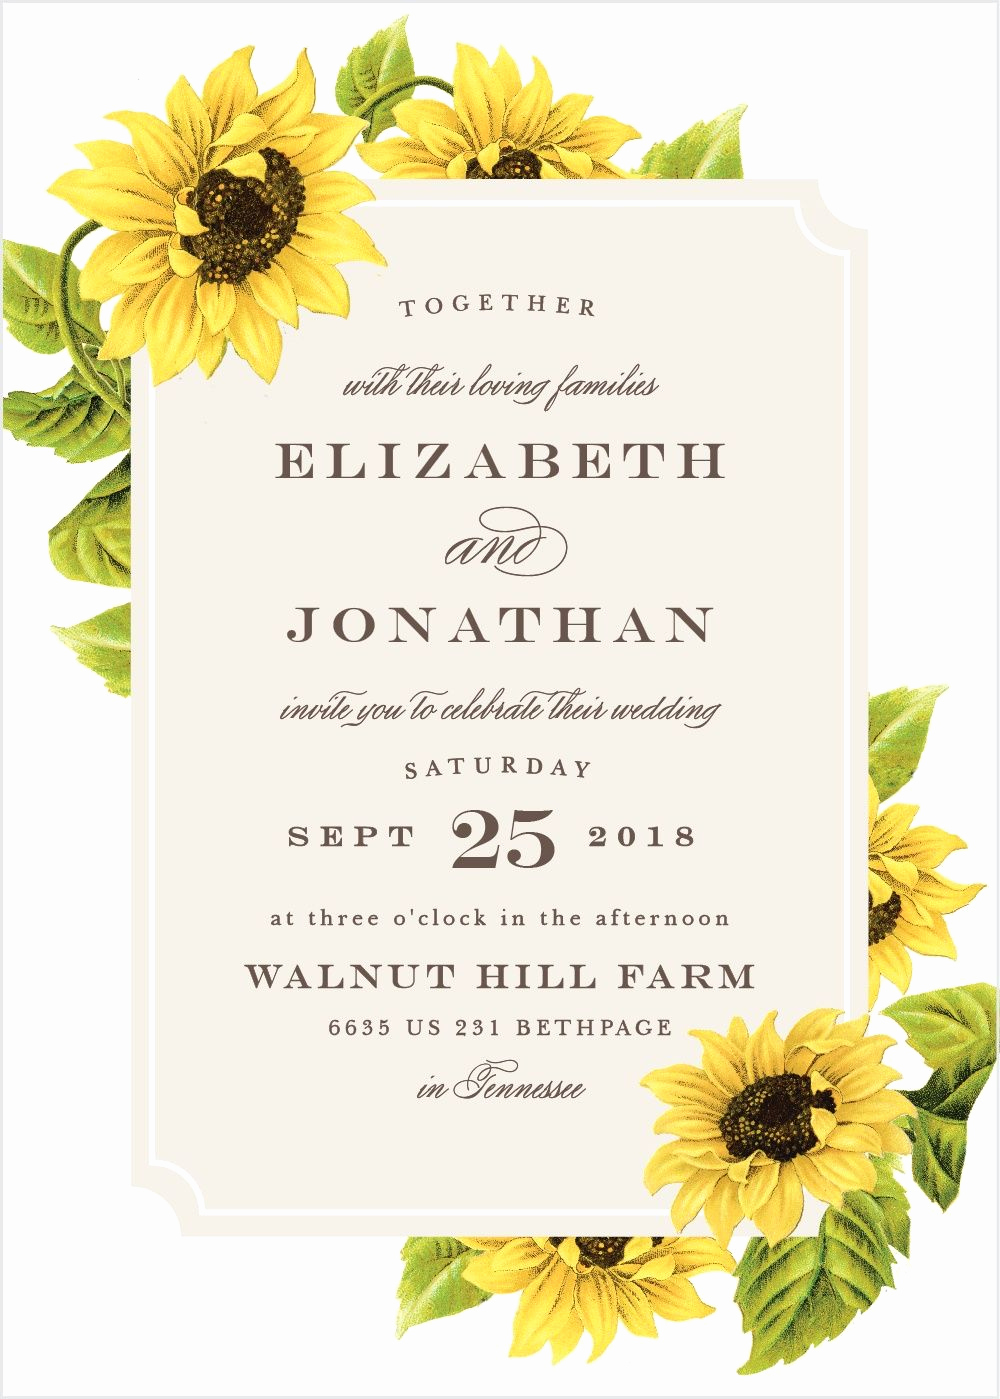 Wedding Invitation Frame Ideas Lovely Sunflower Frame Wedding Invitations In 2019